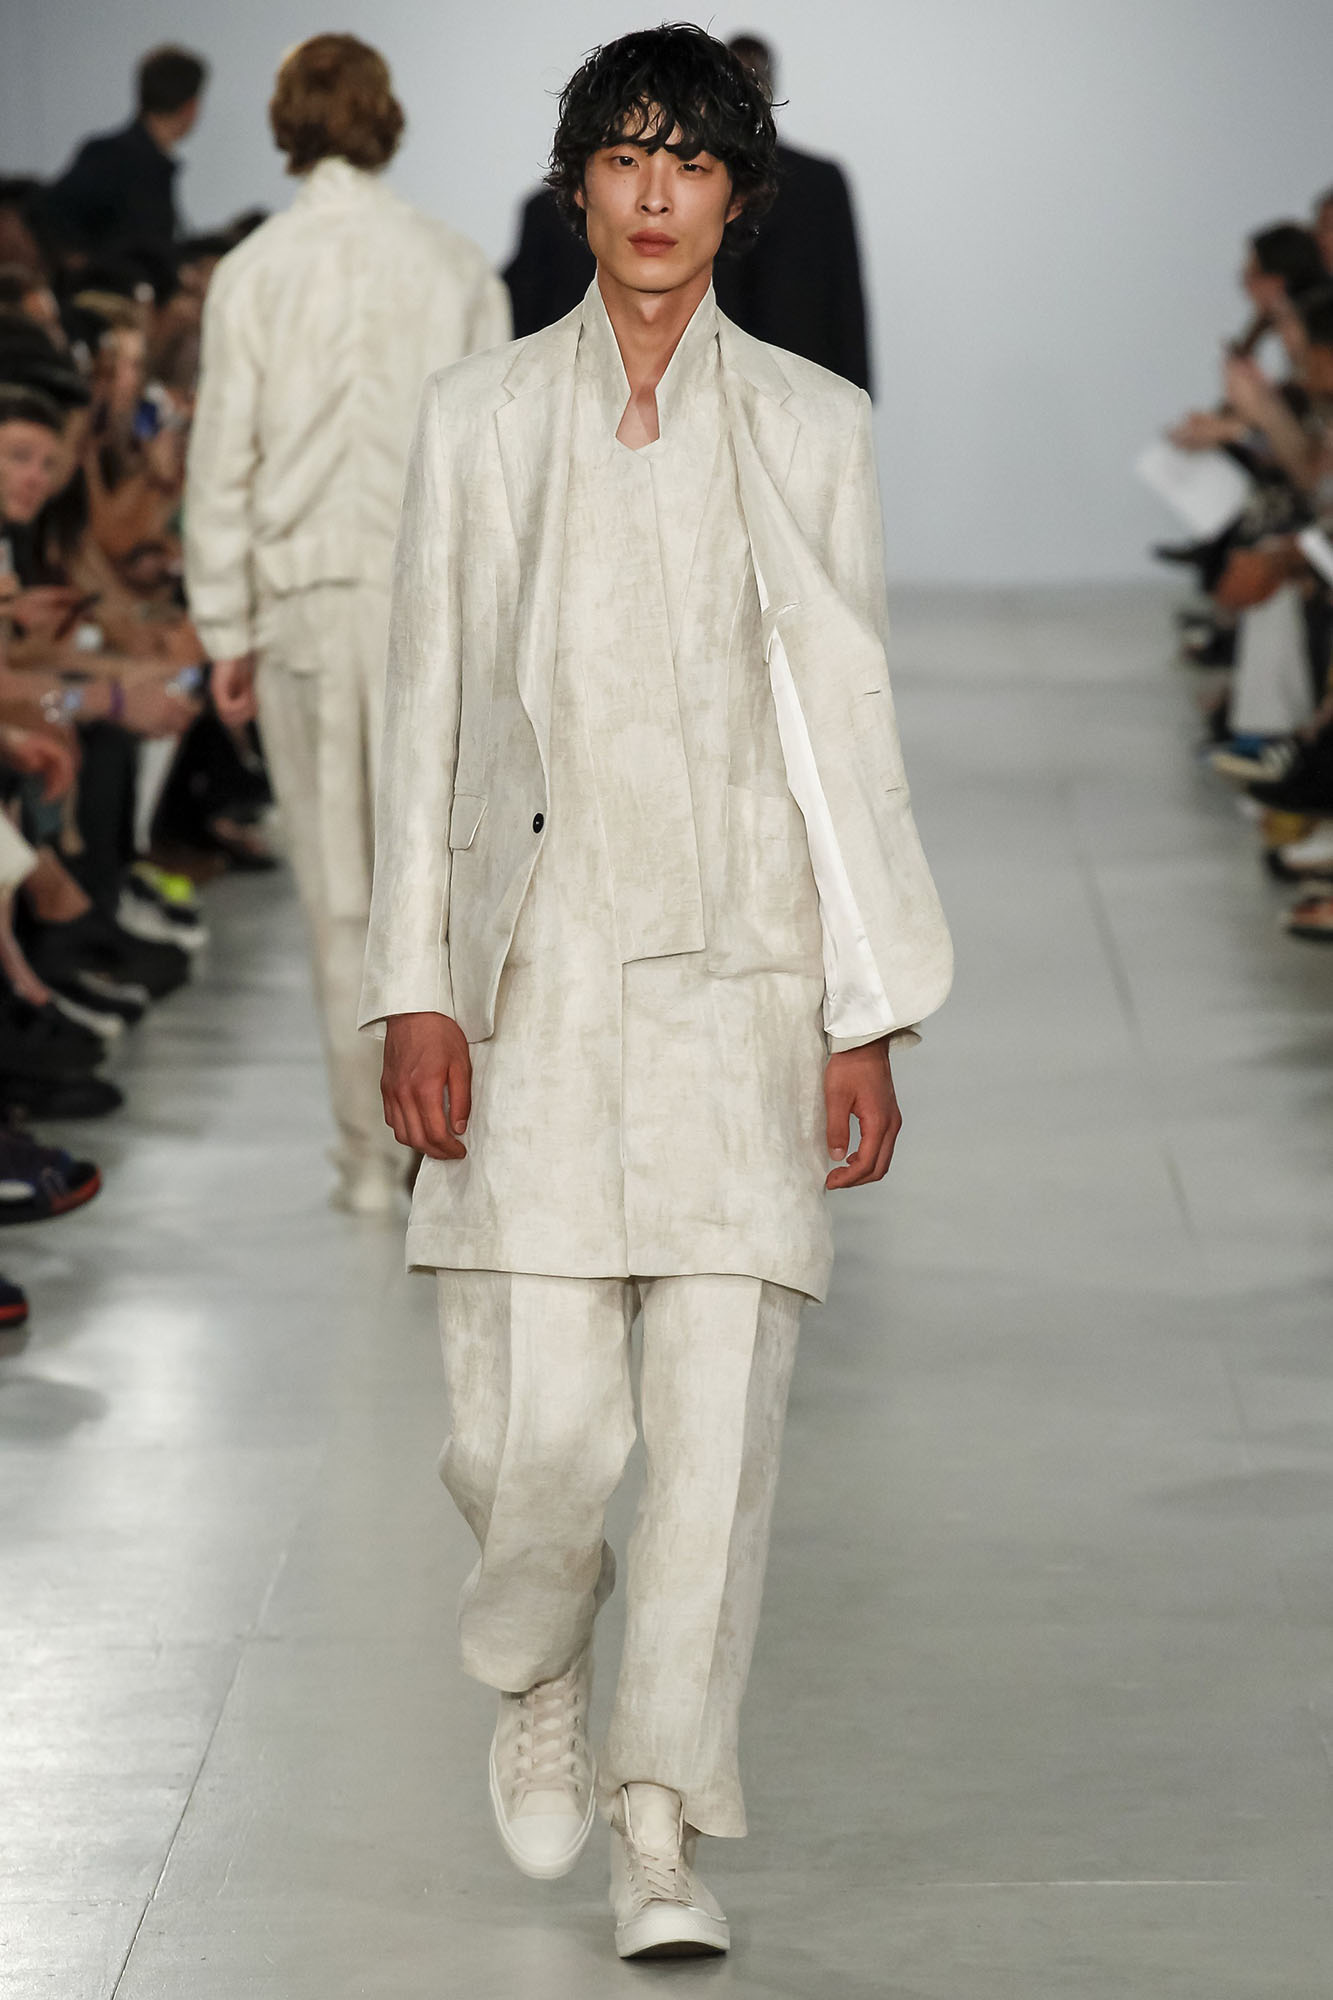 Matthew Miller – London Fashion Week: Men's – Spring Summer 2017